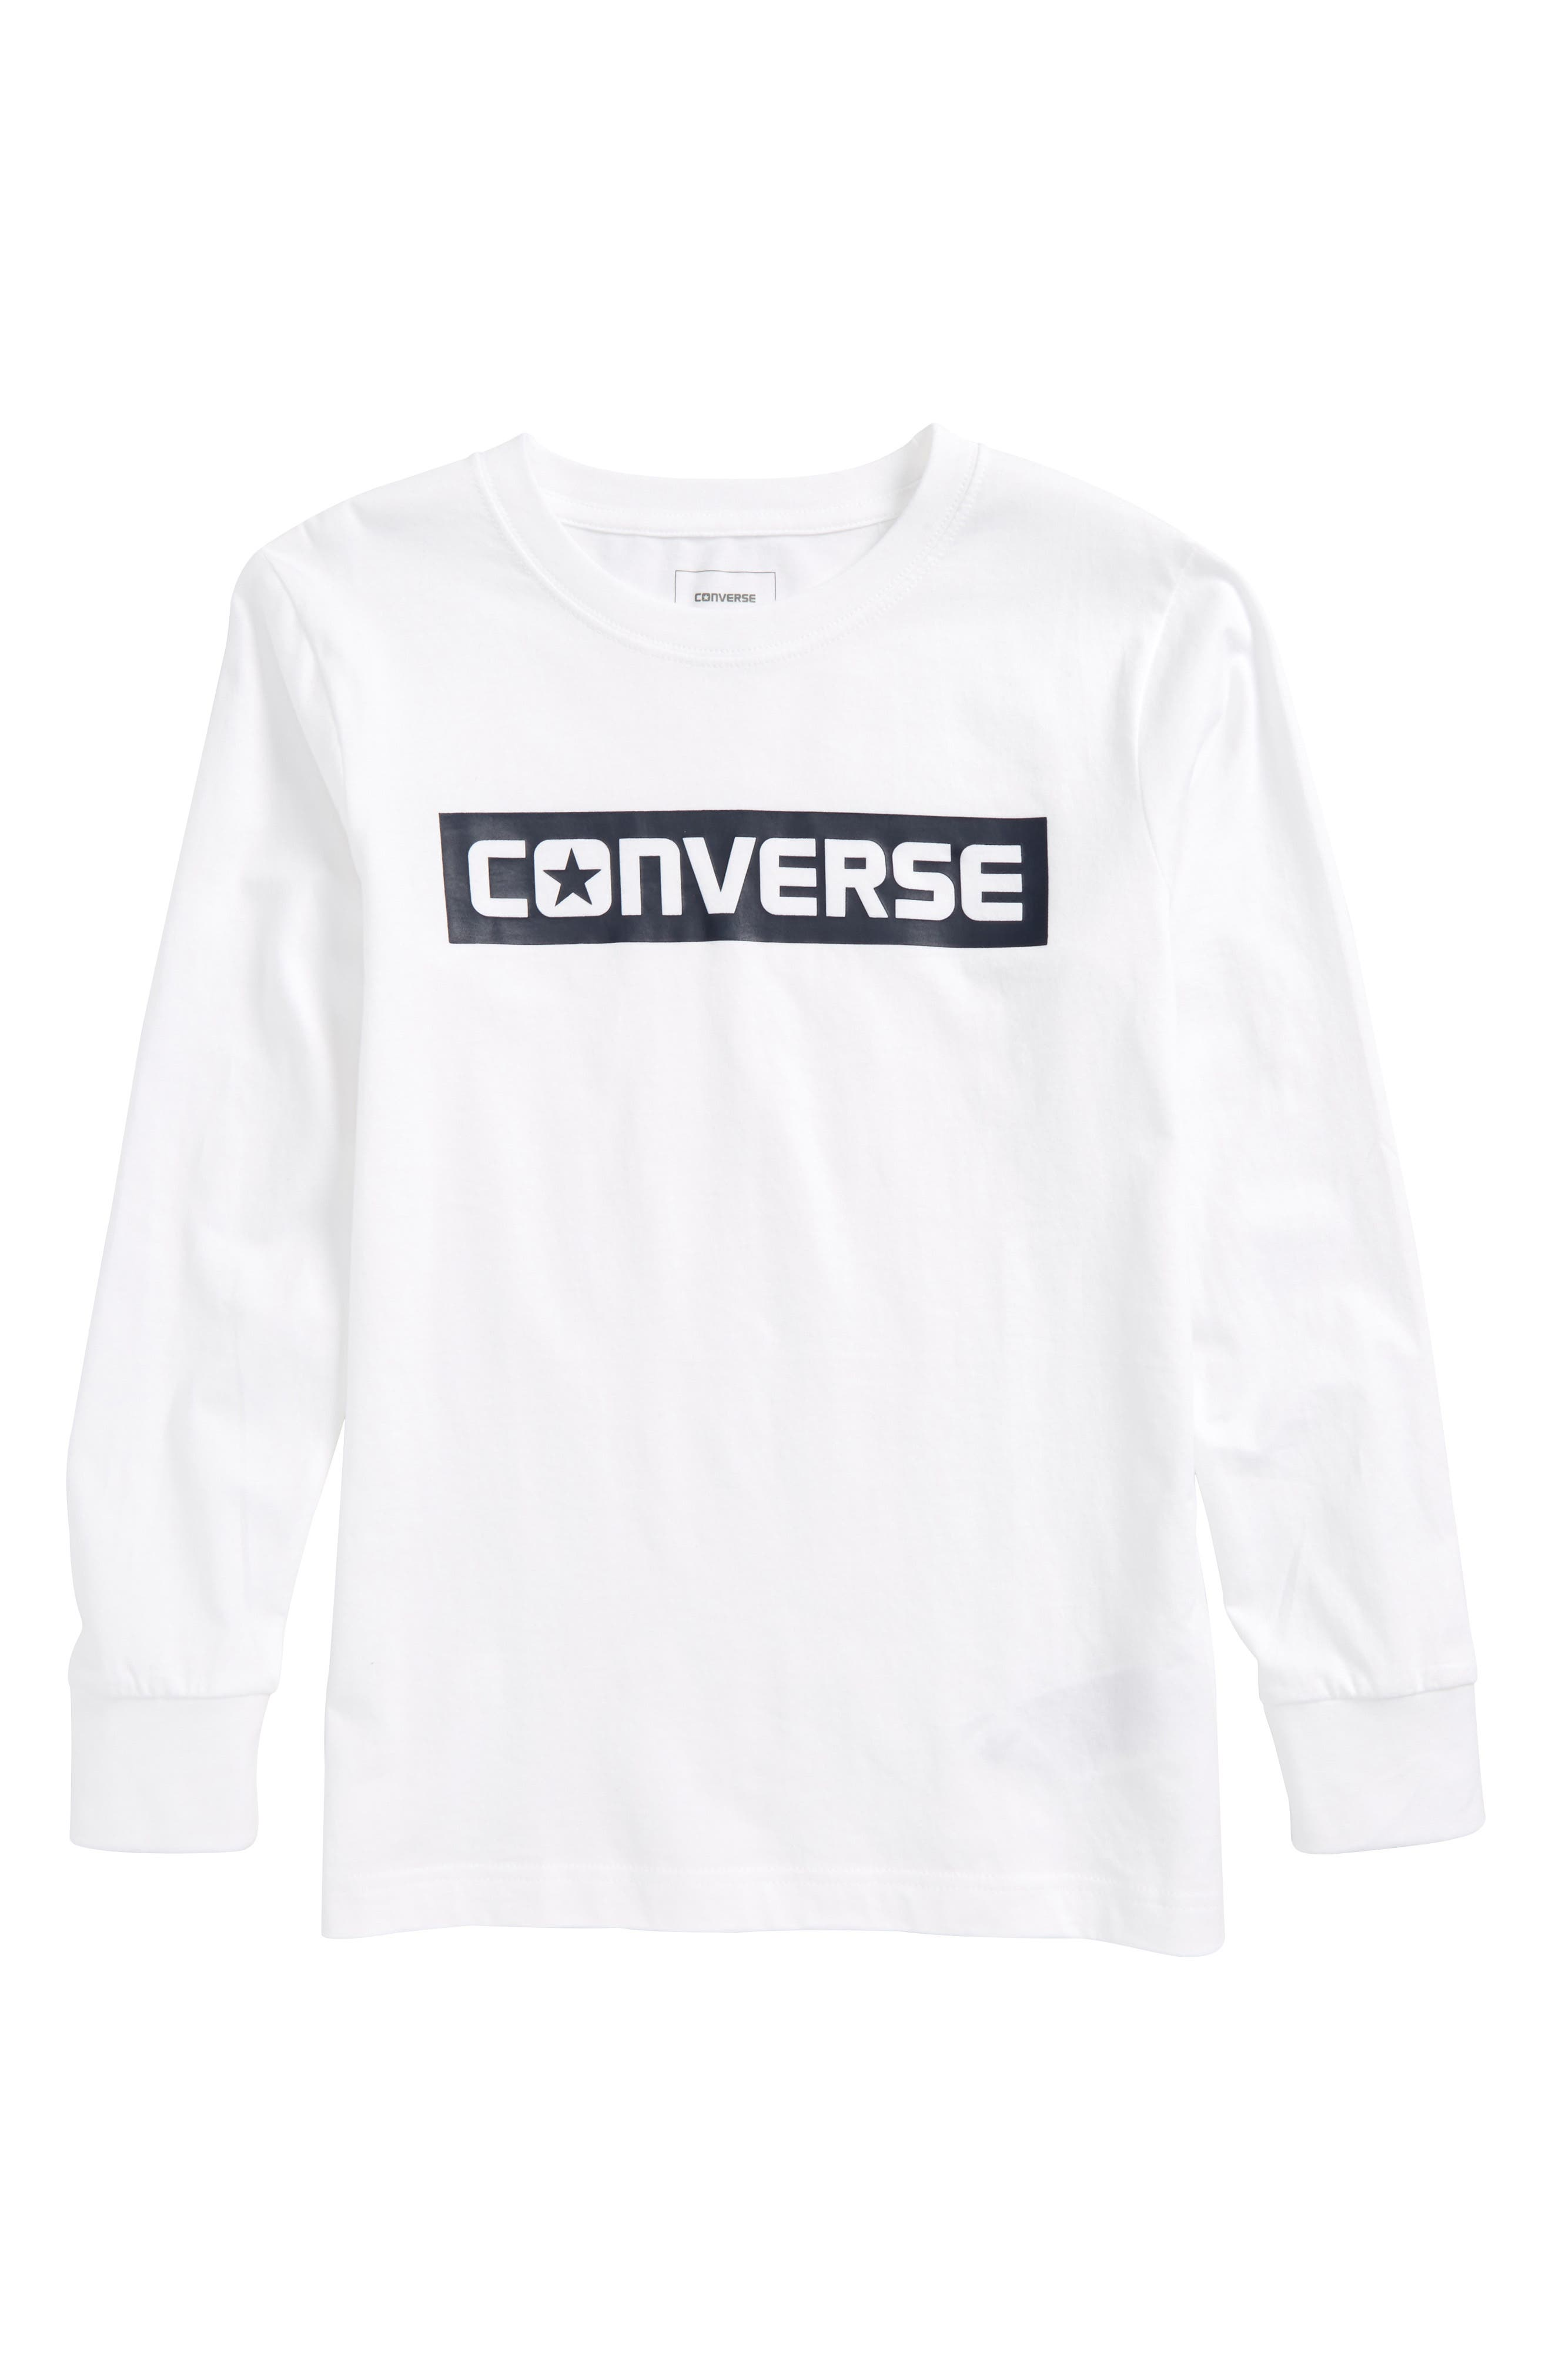 Alternate Image 1 Selected - Converse Wordmark Graphic T-Shirt (Big Boys)